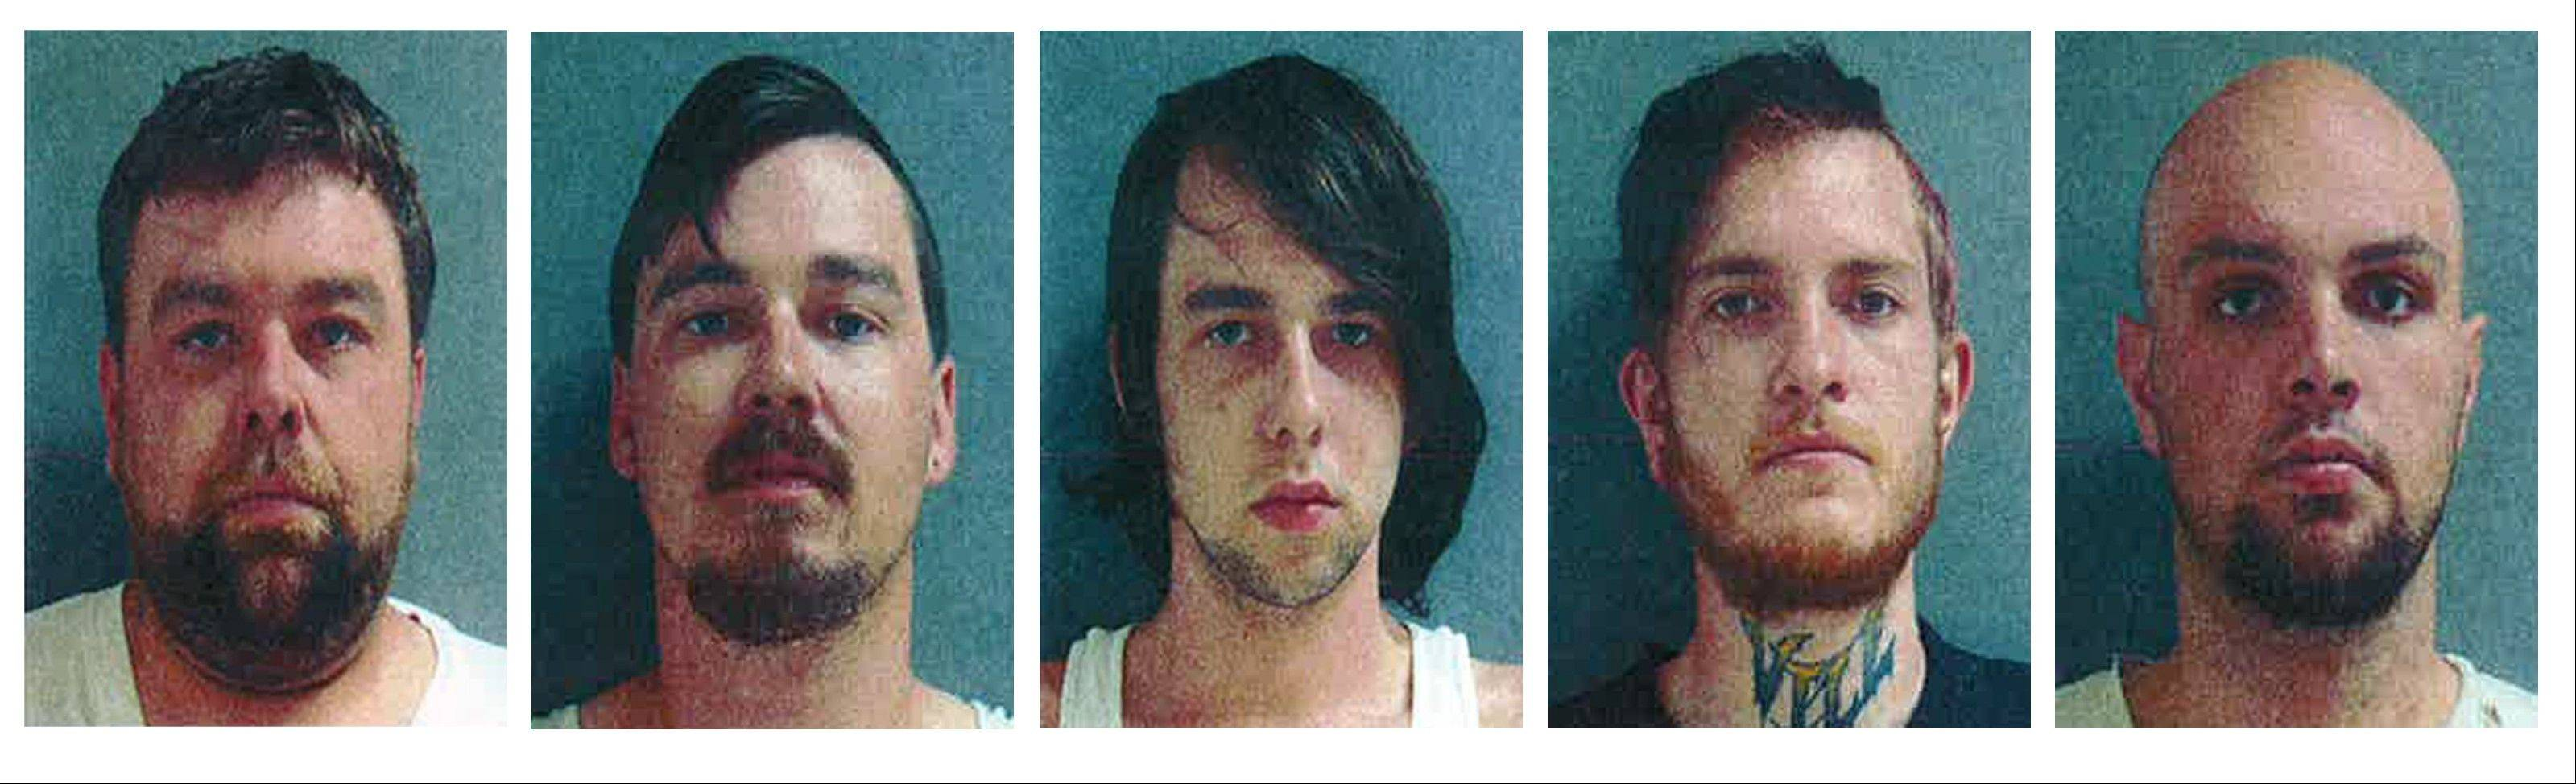 This combo of photos provided by the Tinley Park Police Department shows, from left: Jason Sutherlin, Cody Sutherlin, Dylan Sutherlin, Alex Struck and John Tucker. All five pleaded guilty to a May 19 mob attack in Tinley Park.